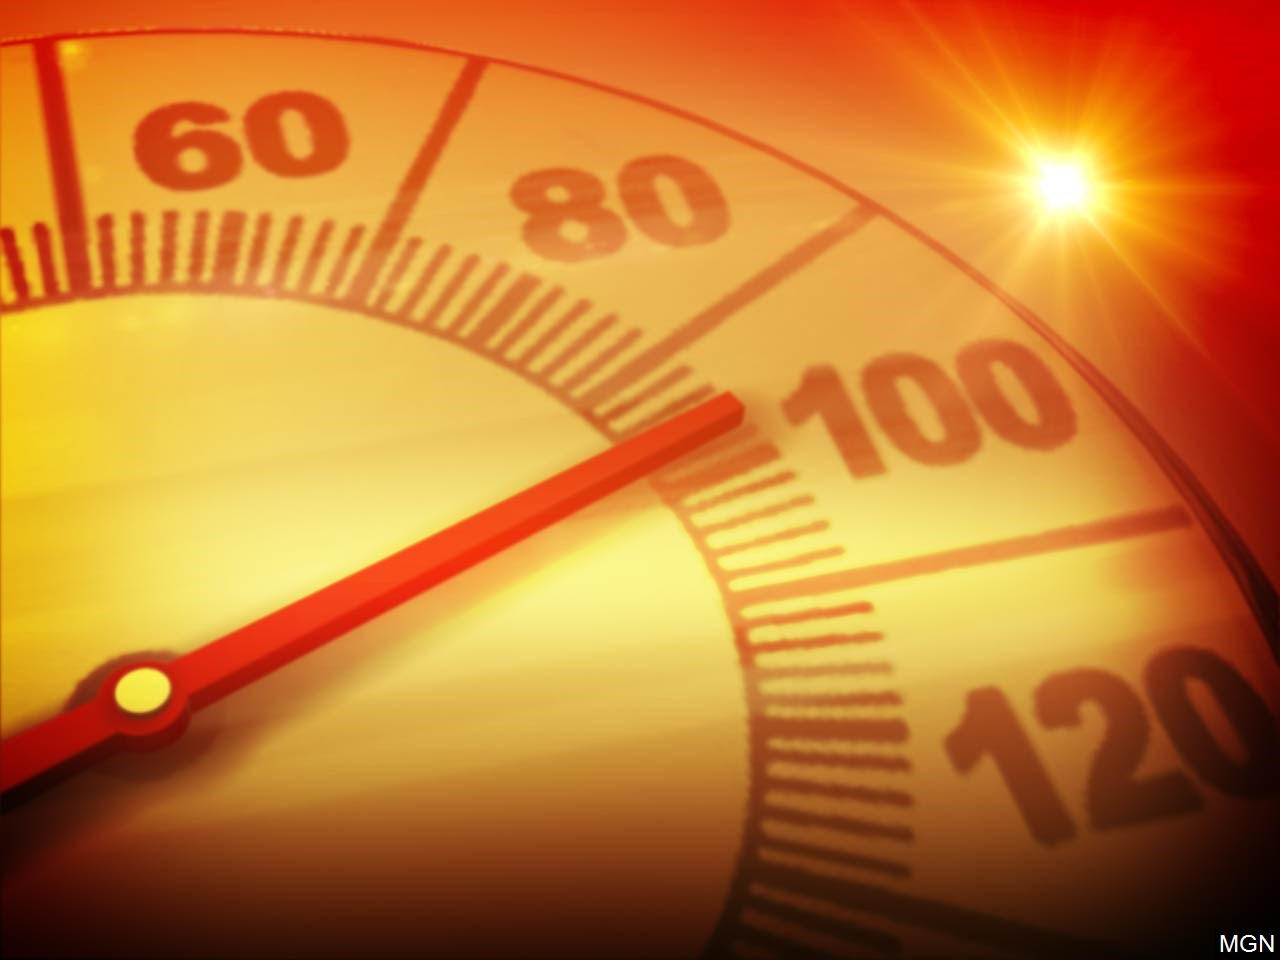 Another heat wave heading to Riverside County this weekend